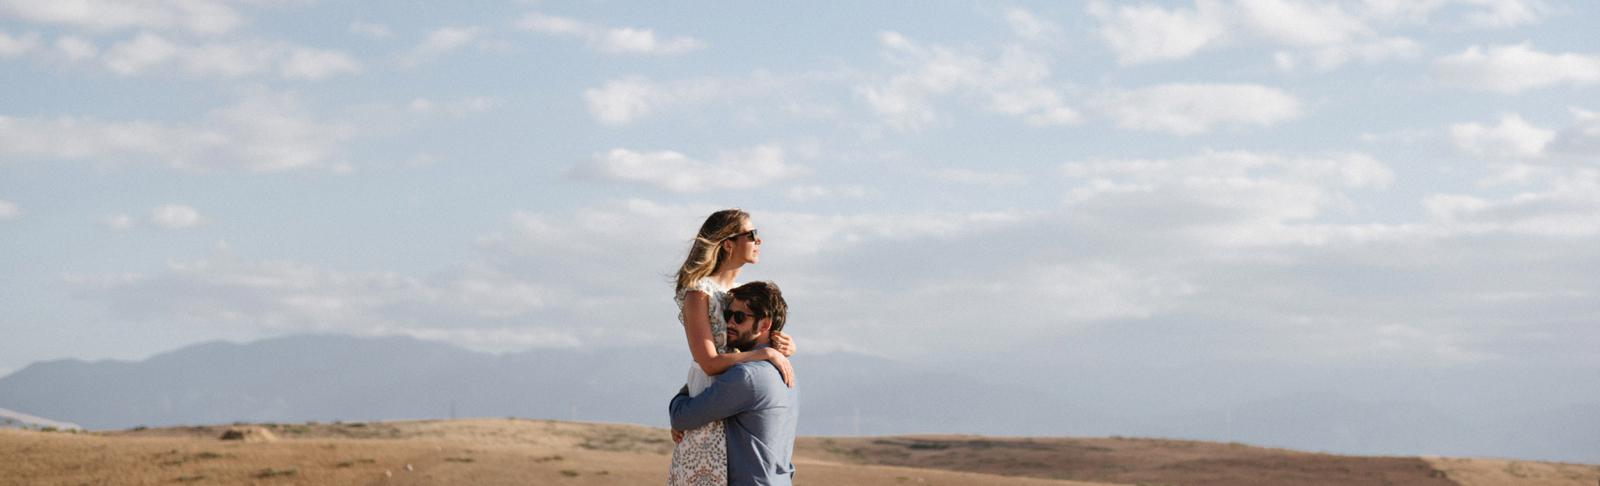 feature-chloe-lapeyssonnie-modern-hipster-wedding-morocco-marrakech-desert-poolparty-villak_0066